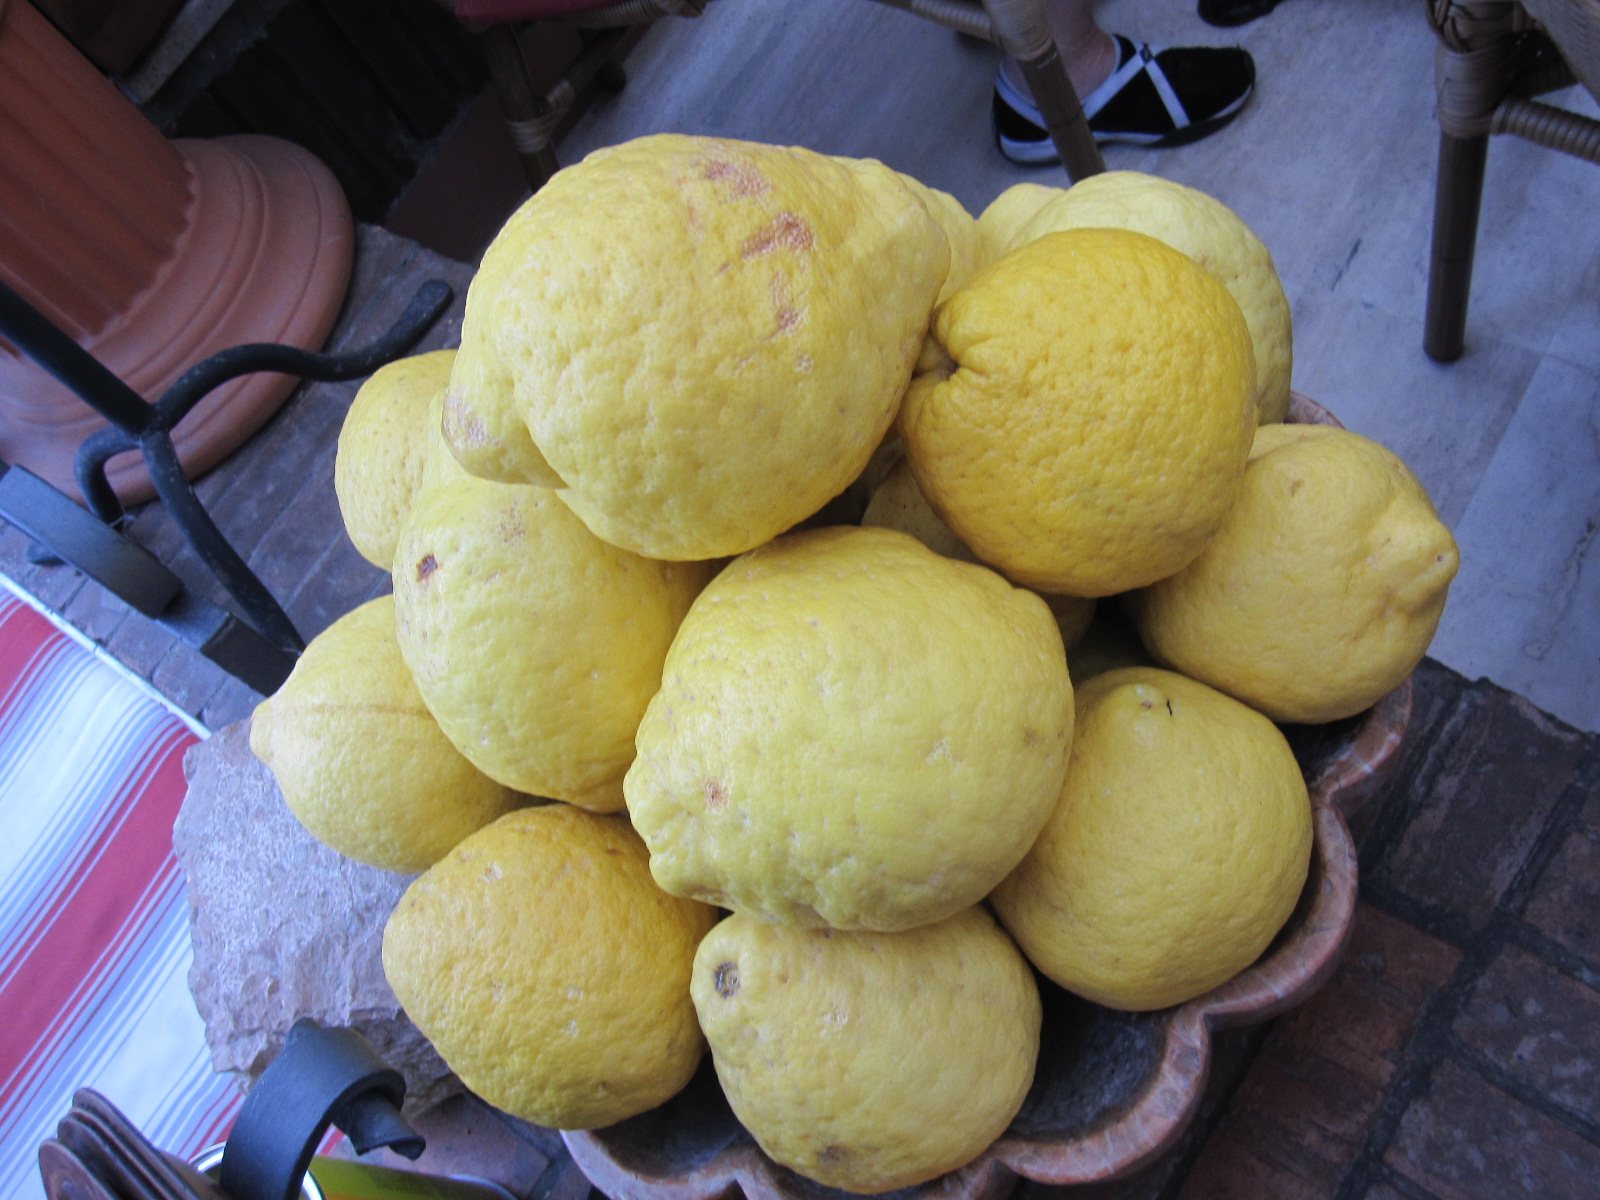 One of the typical products of the Amalfi coast: the giant lemons.  And what a smell!